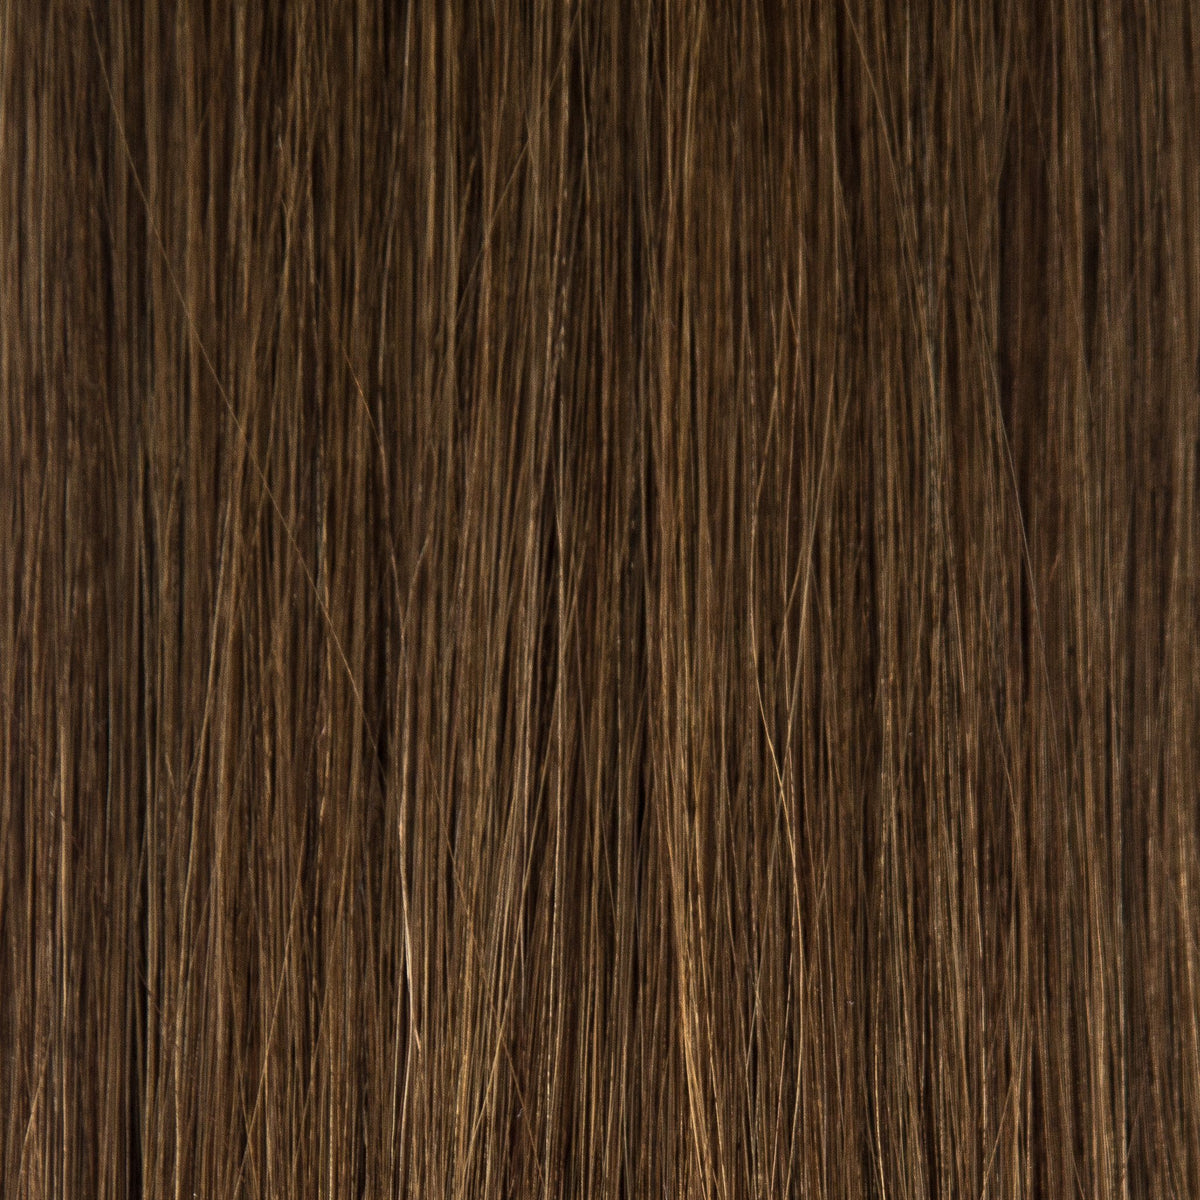 Keratin - Laced Hair Keratin Bond Extensions #5 (Caramel)